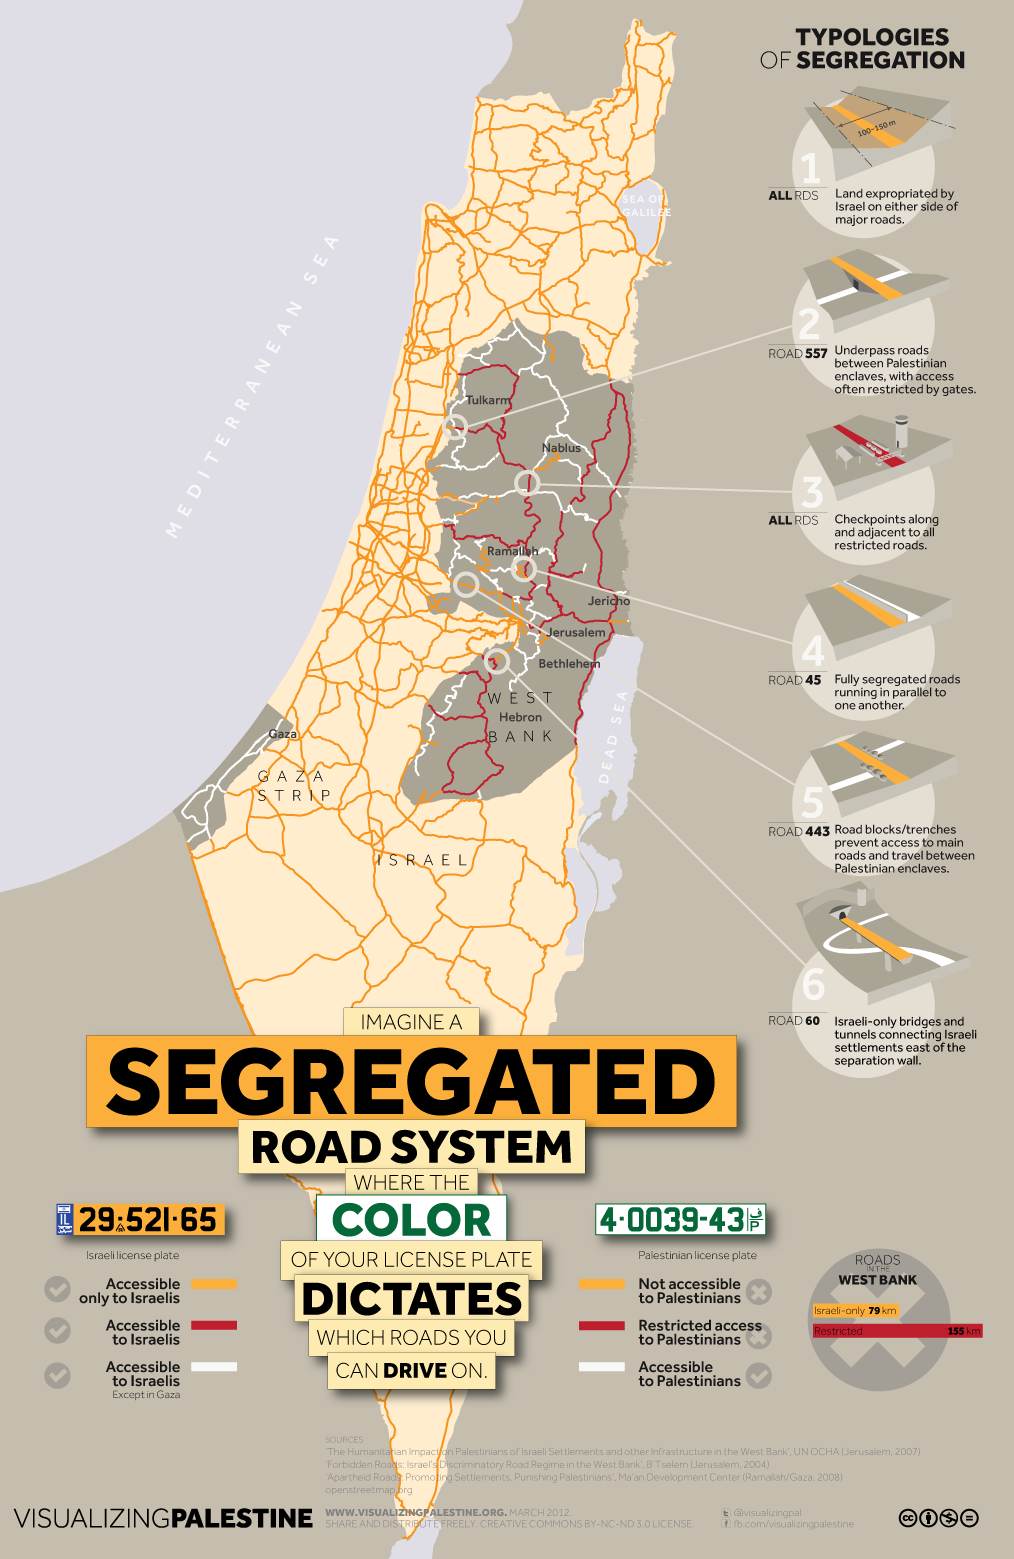 Israels System of Segregated Roads in the Occupied Palestinian